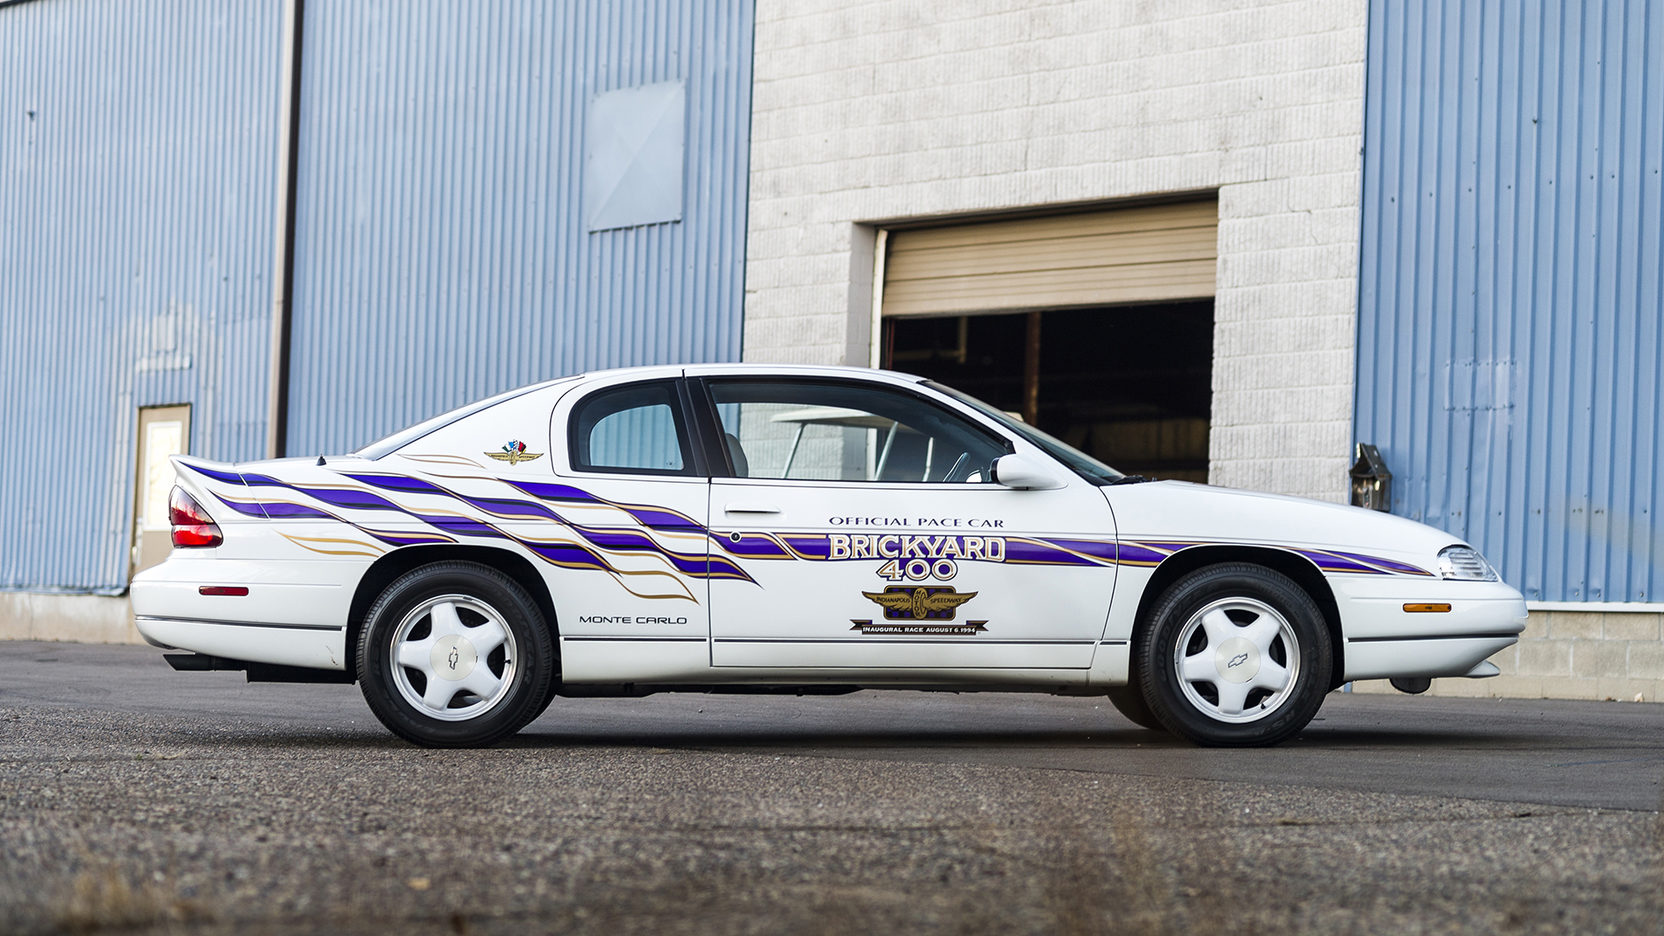 1995 chevrolet monte carlo z34 pace car edition 8 full screen [ 1664 x 936 Pixel ]